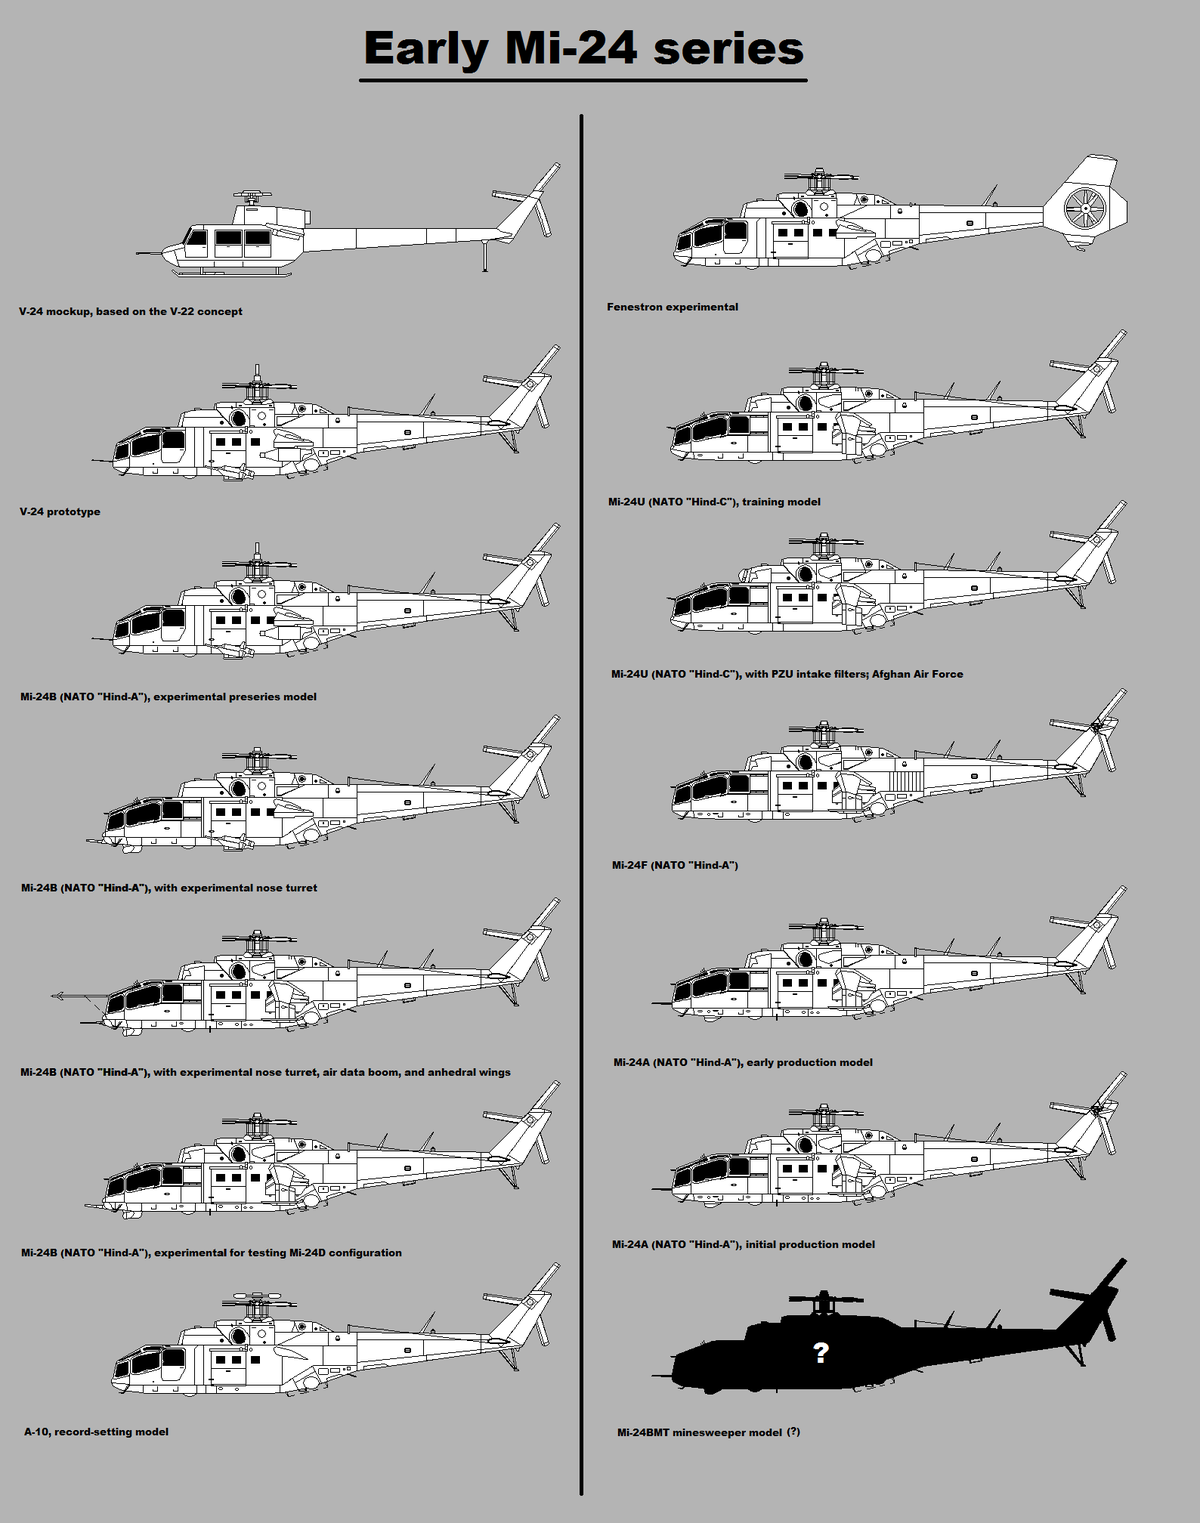 helicopter flights with List Of Mil Mi 24 Variants on Ac modation likewise List of Mil Mi 24 variants additionally Airbus Helicopter H160 17870 also Fiji Photo Gallery   I further Index9548.